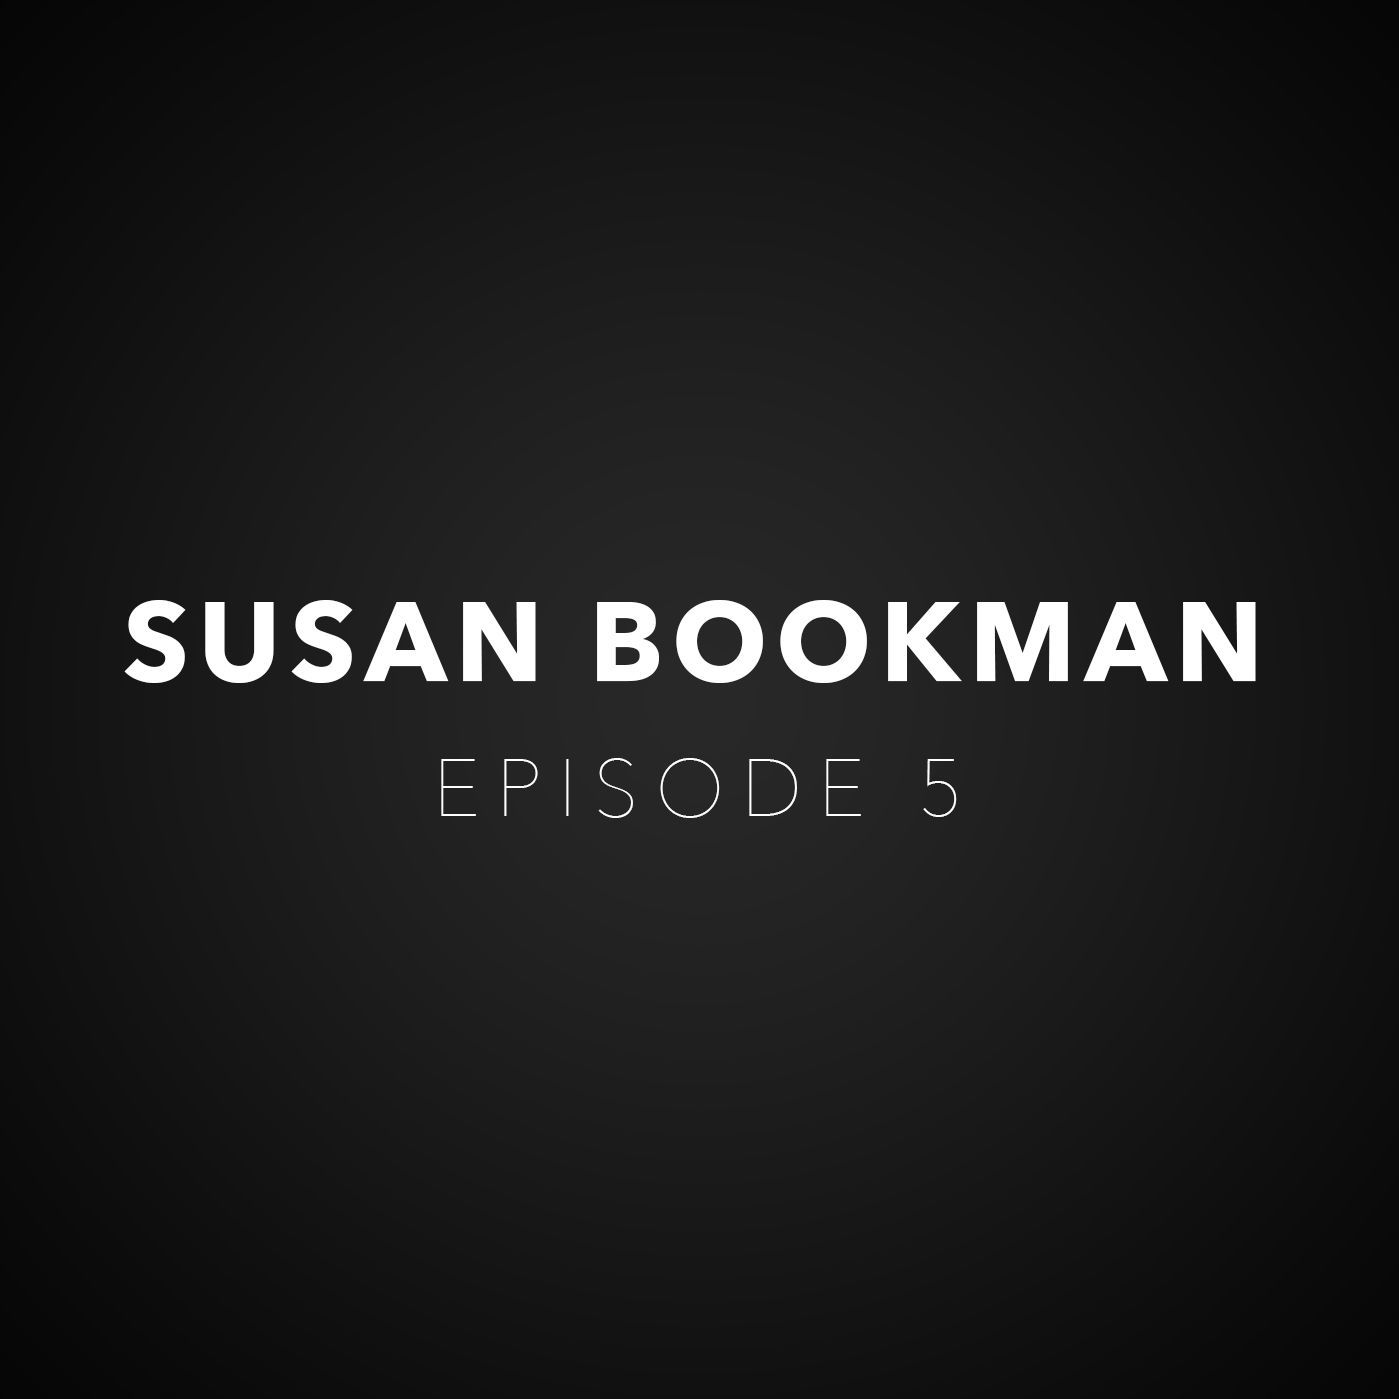 Episode 5 - Sewing With Susan